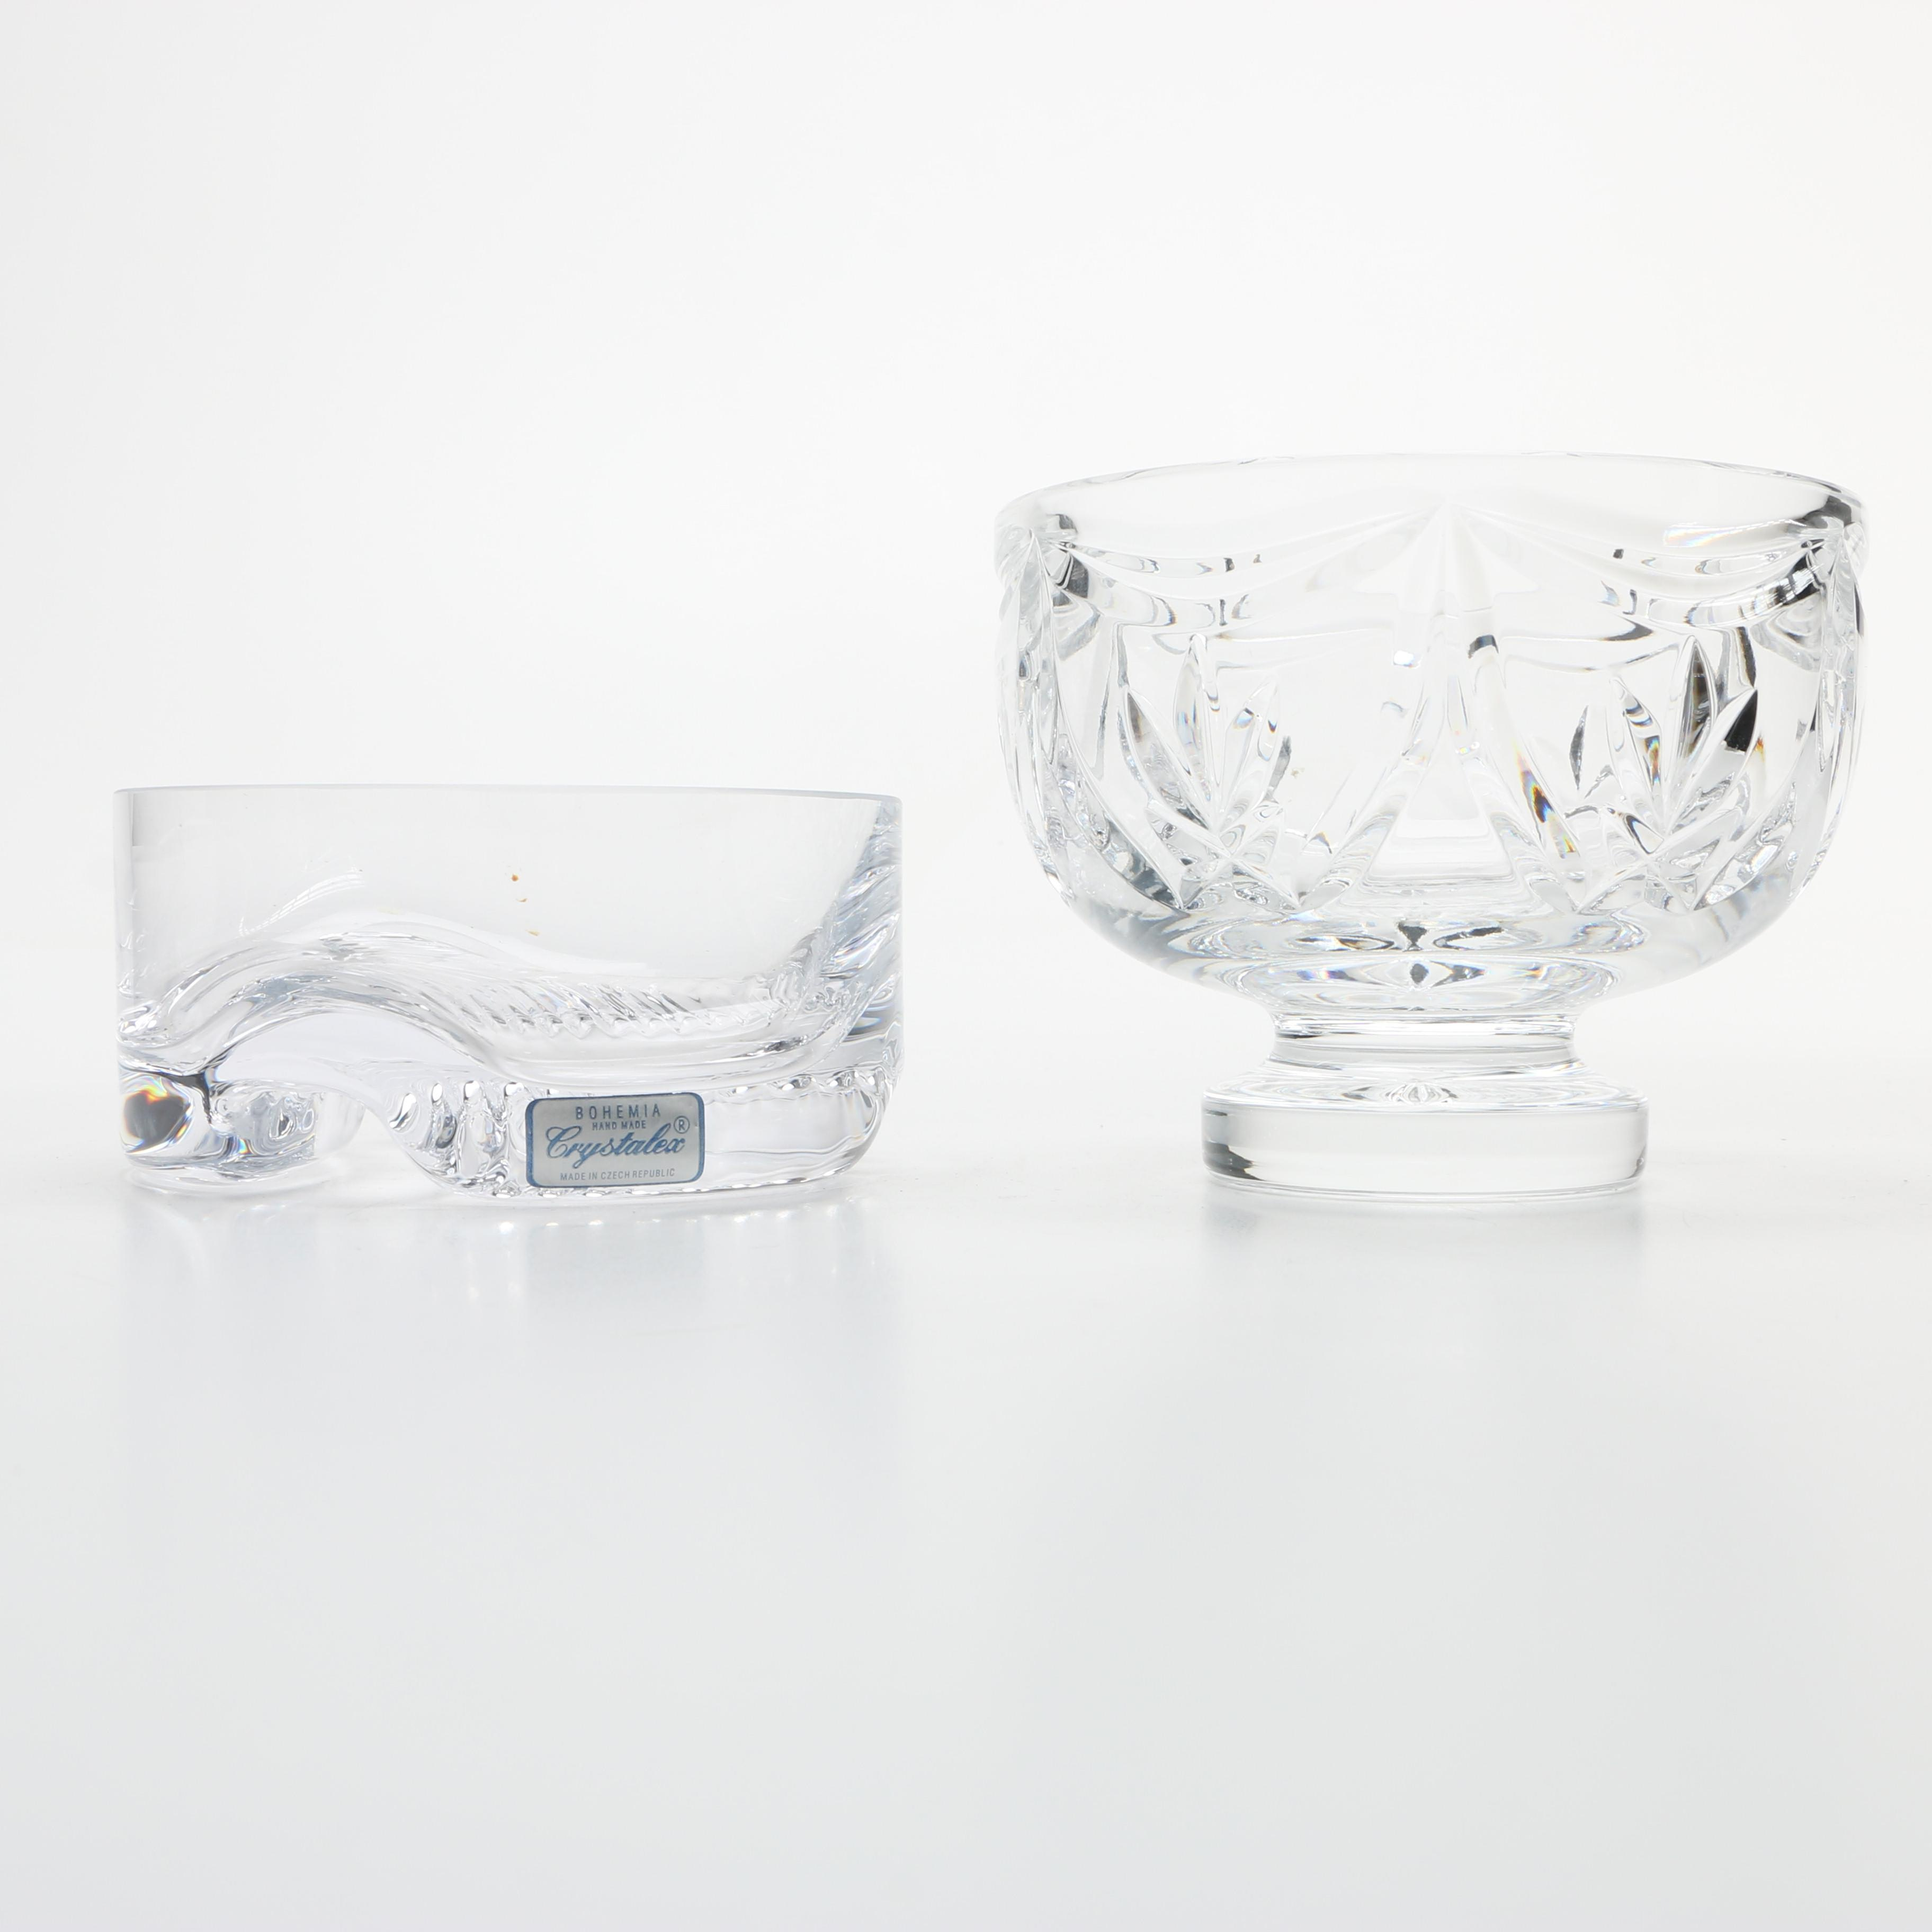 Waterford Crystal Bowl and Crystalex Wine Coaster